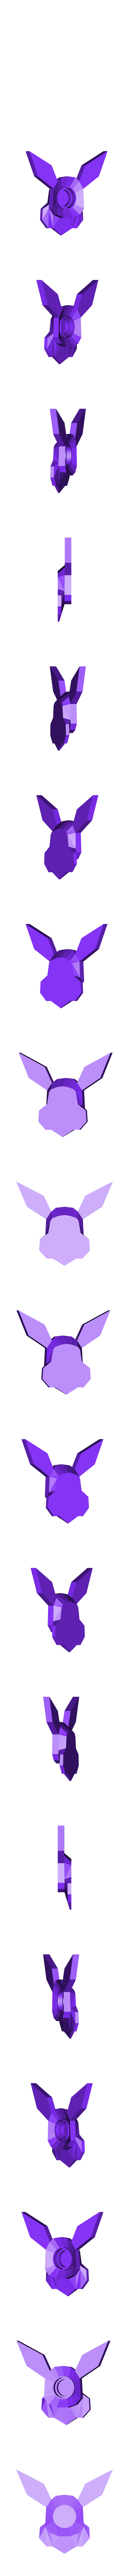 2candle_eevee.stl Download free STL file Pokemon Bithday Candles - Pikachu and Eevee • Object to 3D print, 3D-mon